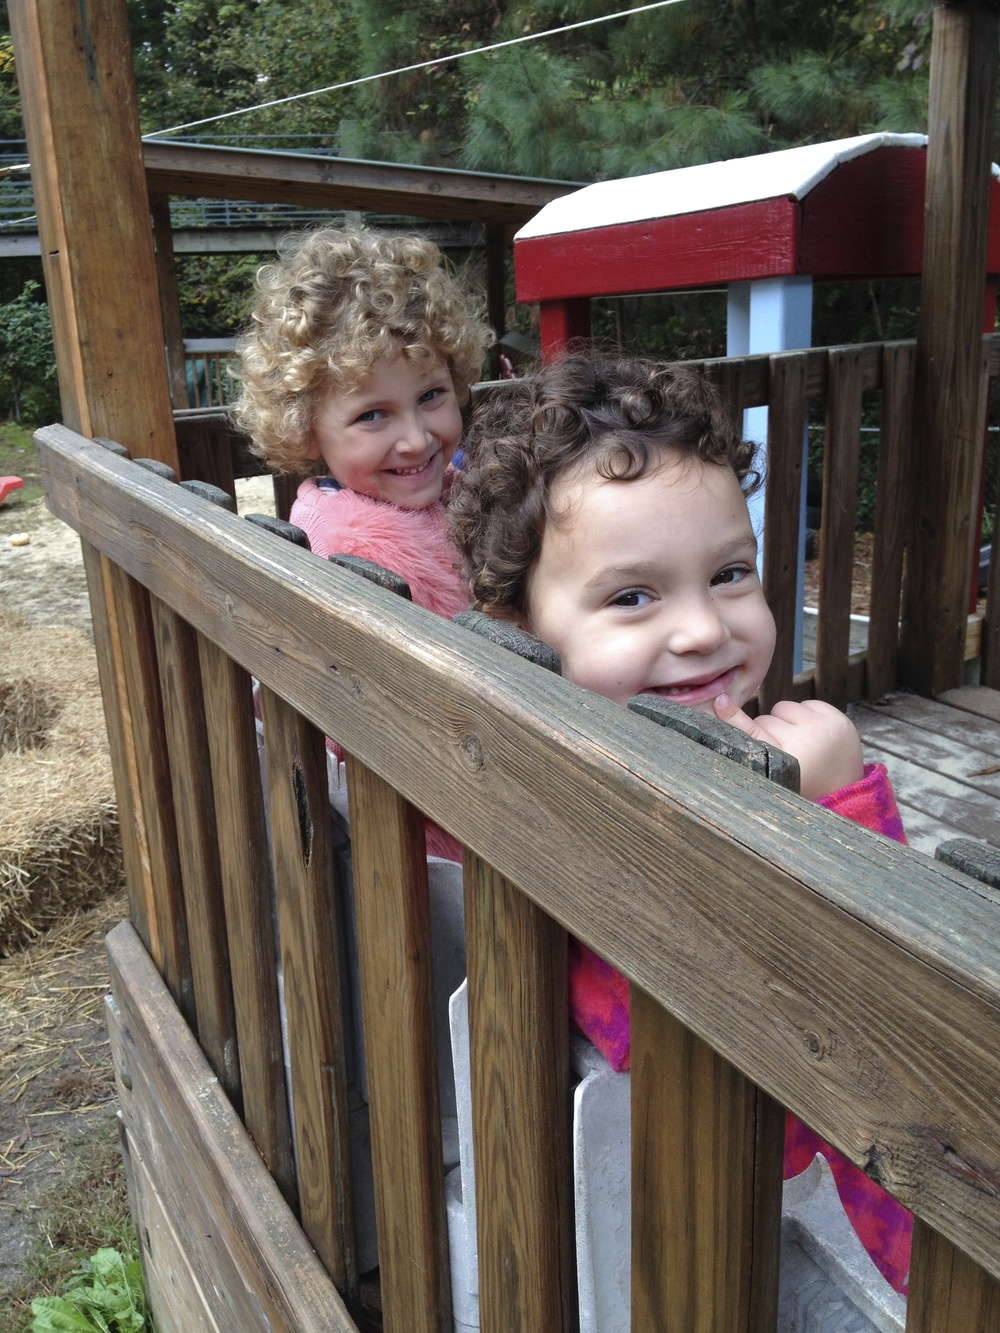 4 and 5 day friends enjoying the playground.